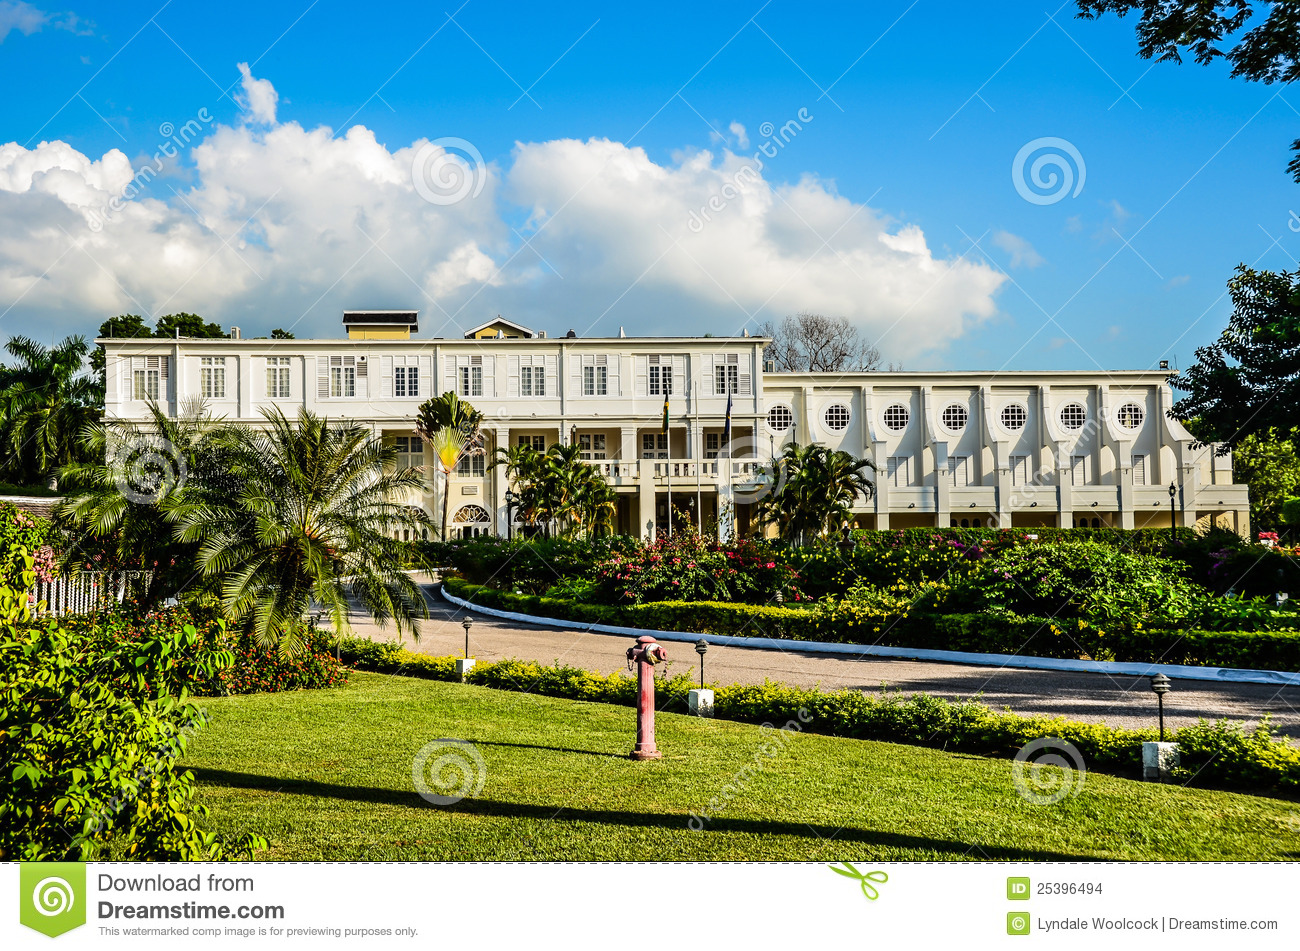 Historical Kings House Jamaica Stock Photo Image 25396494